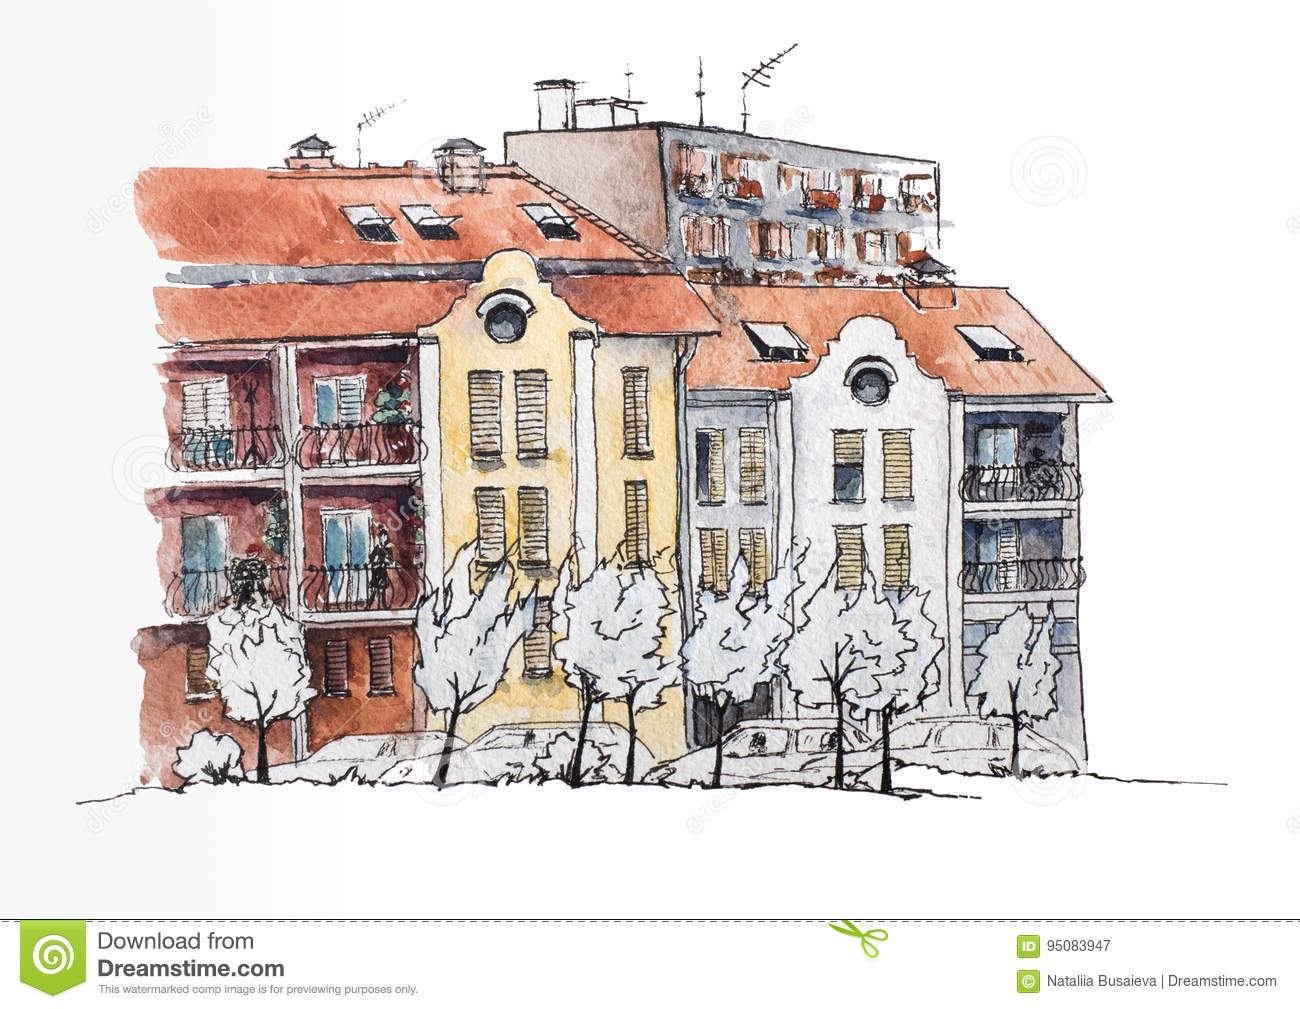 European town with old and modern houses urban view watercolor